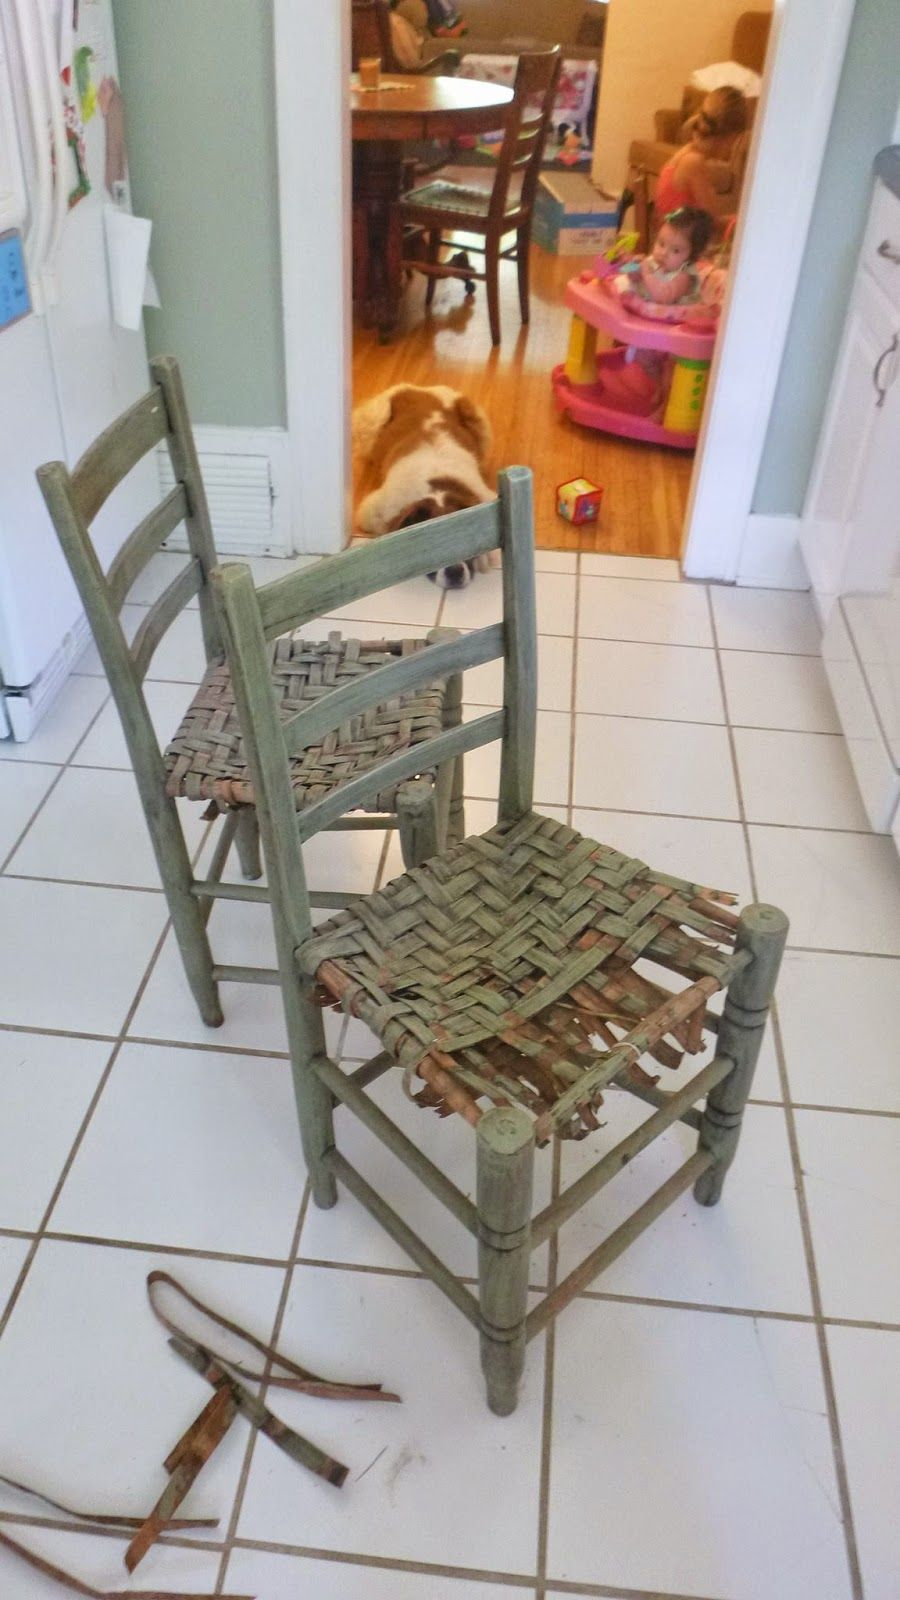 pennies and glue breathing new life into old chairs redoing wooden rh pinterest com glue for plastic chairs glue for chair moulding